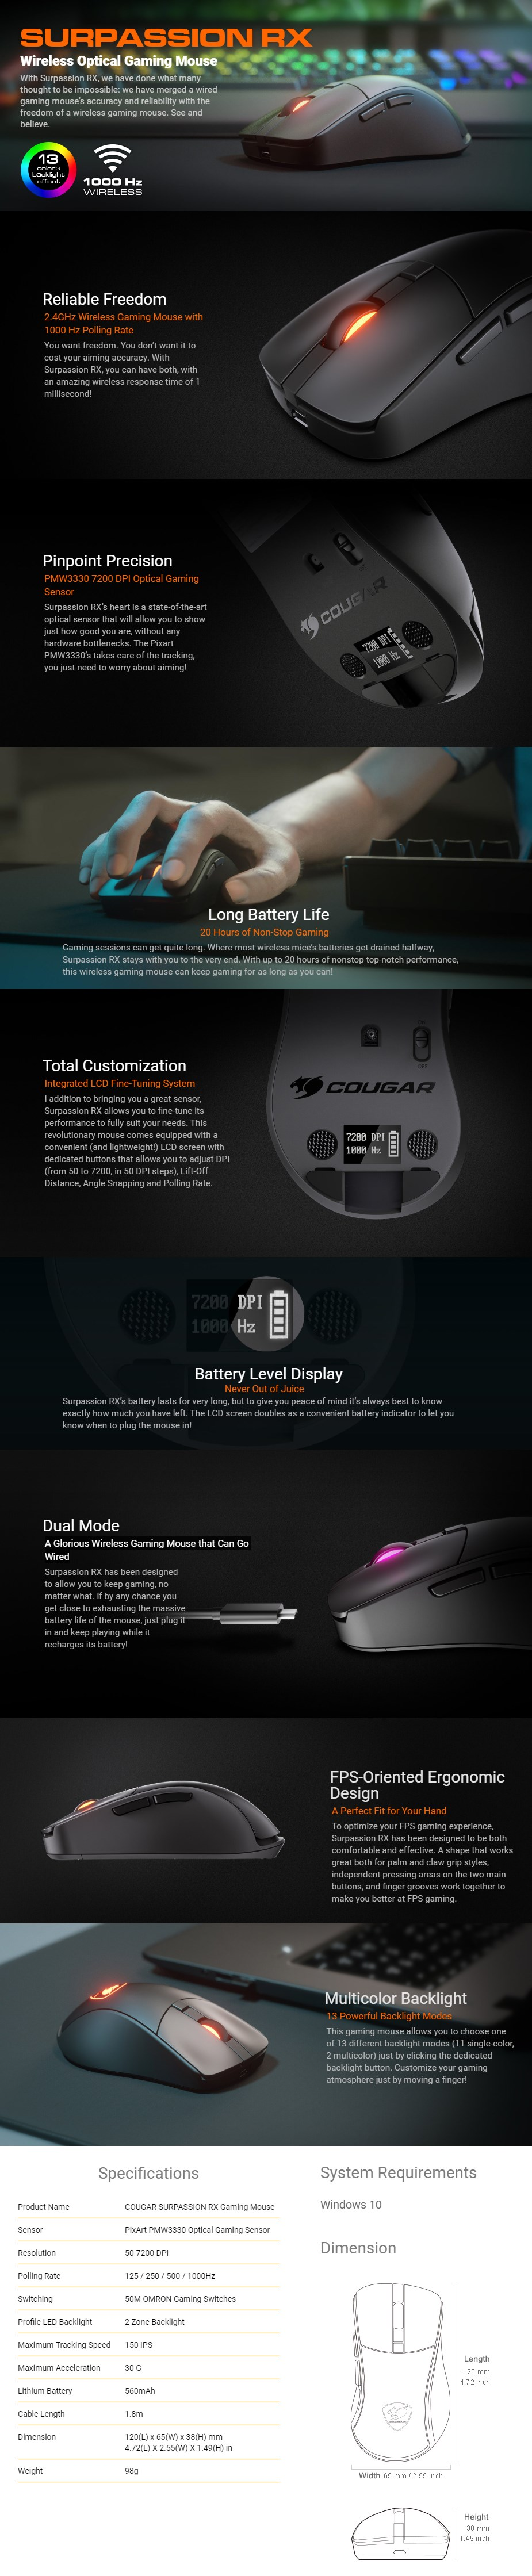 cougar-surpassion-rx-wireless-rgb-gaming-mouse-ac27696-9.jpg